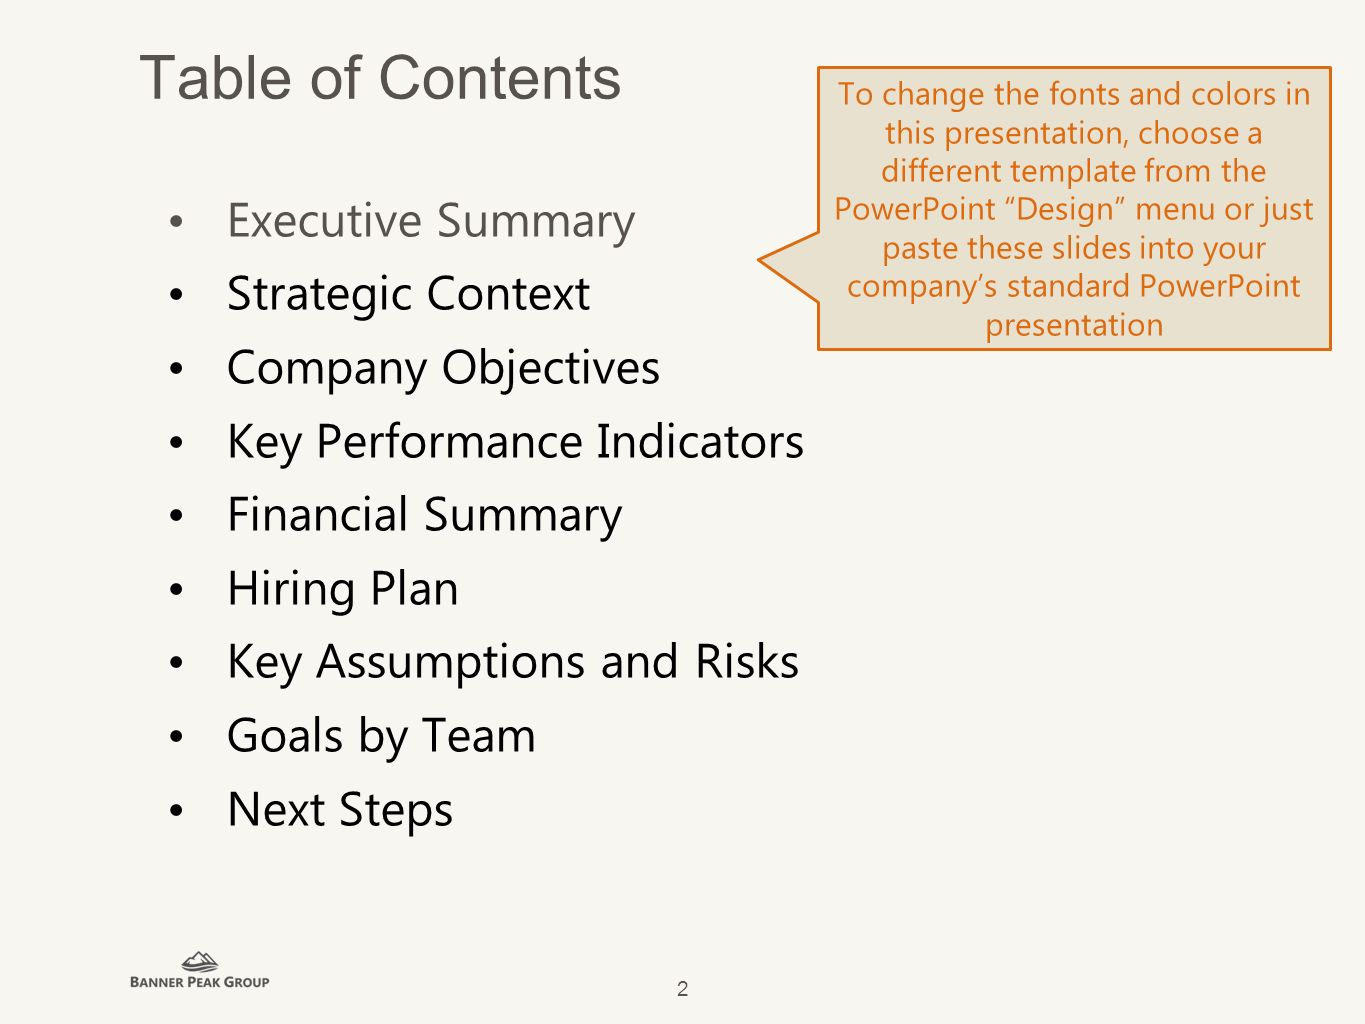 2015 operational plan template - ppt video online download, Presentation templates